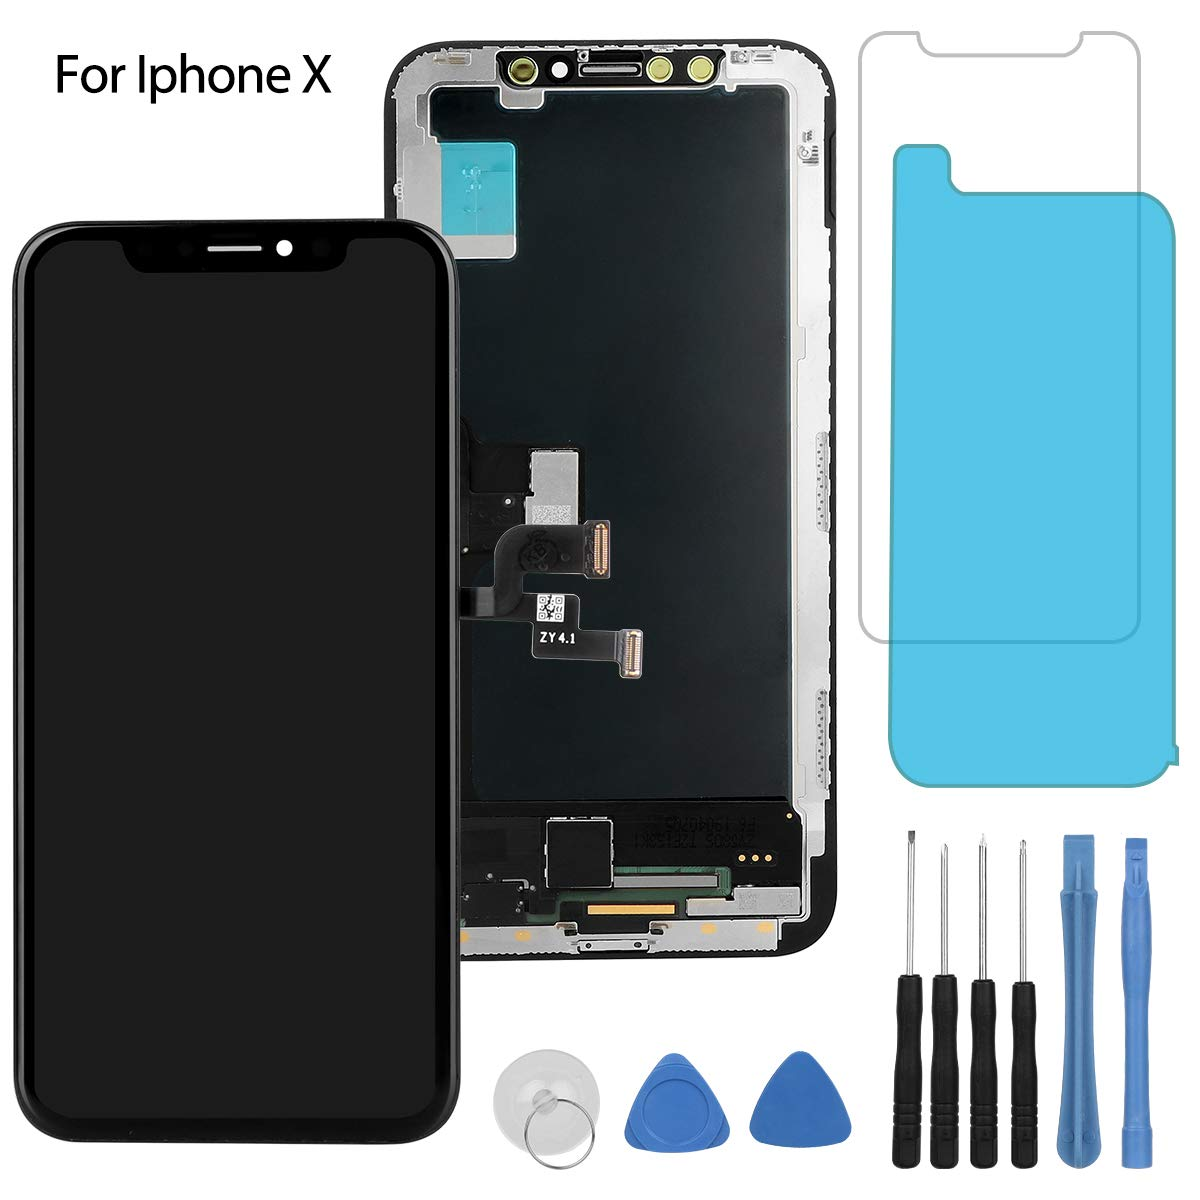 for iPhone X Screen Replacement OLED Display Touch Screen Digitizer Including Repair Kits, Protector Glass, Waterproof Adhesive, Compatible for iPhone X Screen by repairphone